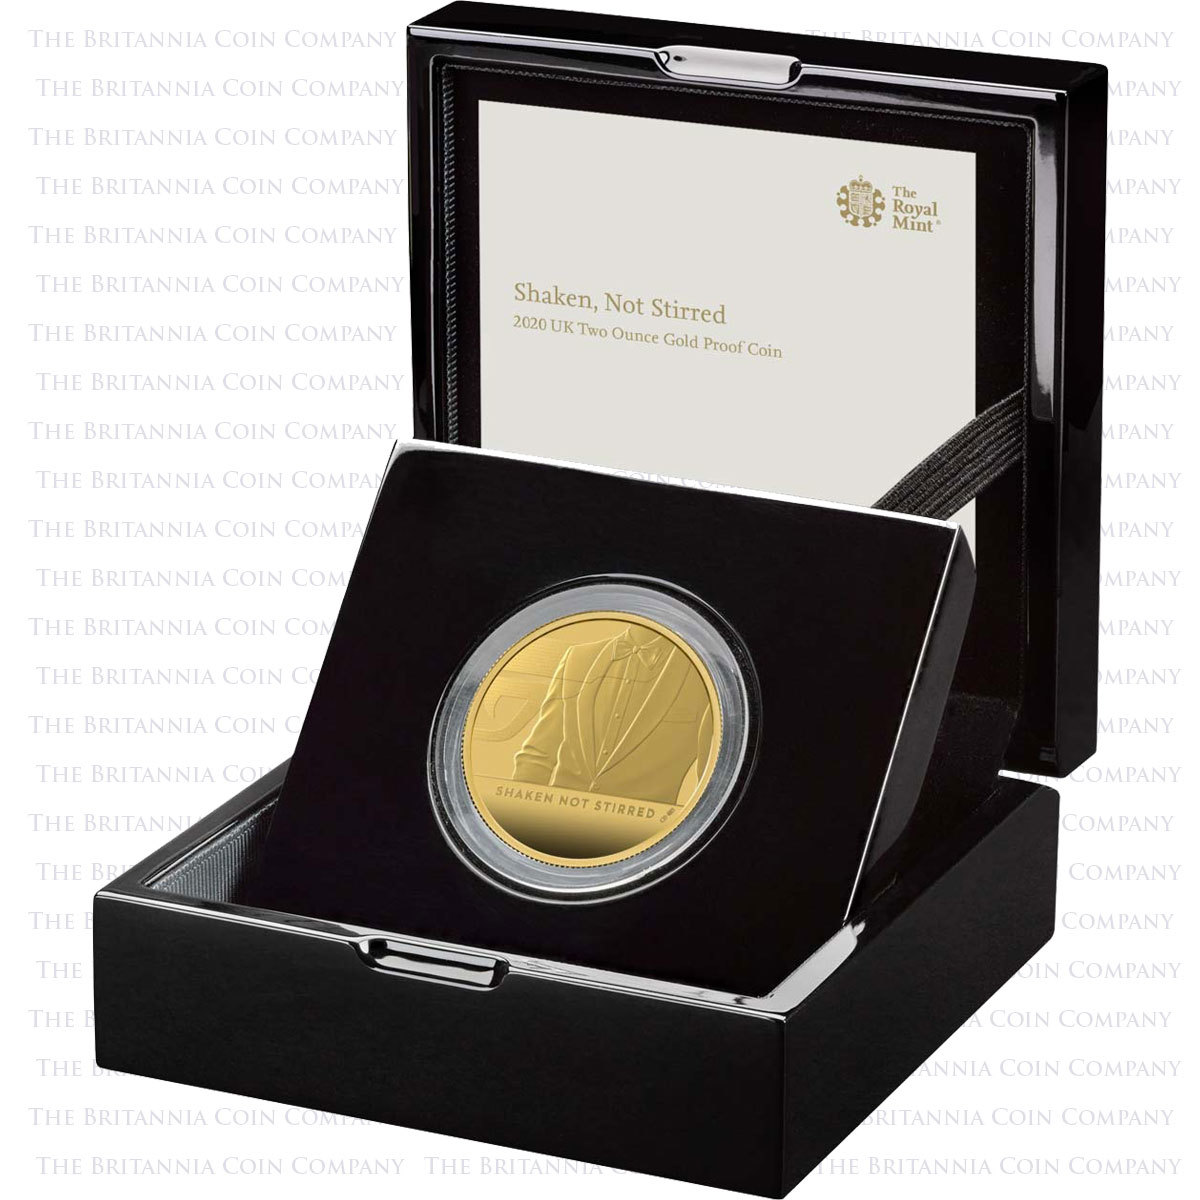 Royal Mint Shaken Not StirredShaken Not Stirred 2020 UK Two-Ounce Gold Proof Coin